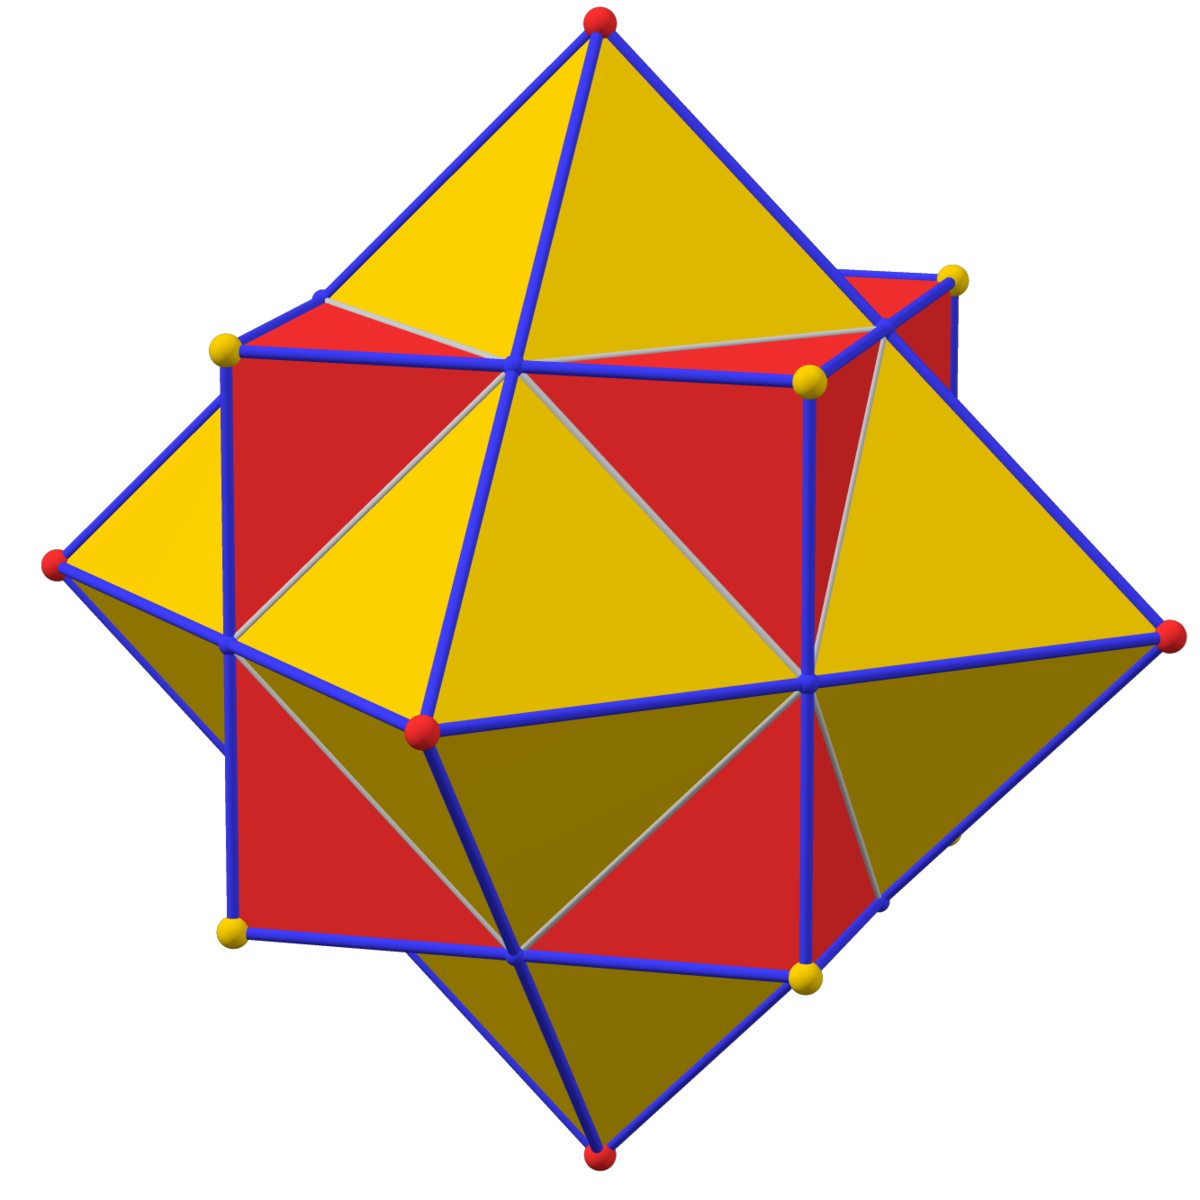 Dual polyhedron wikipedia . Cube clipart congruent